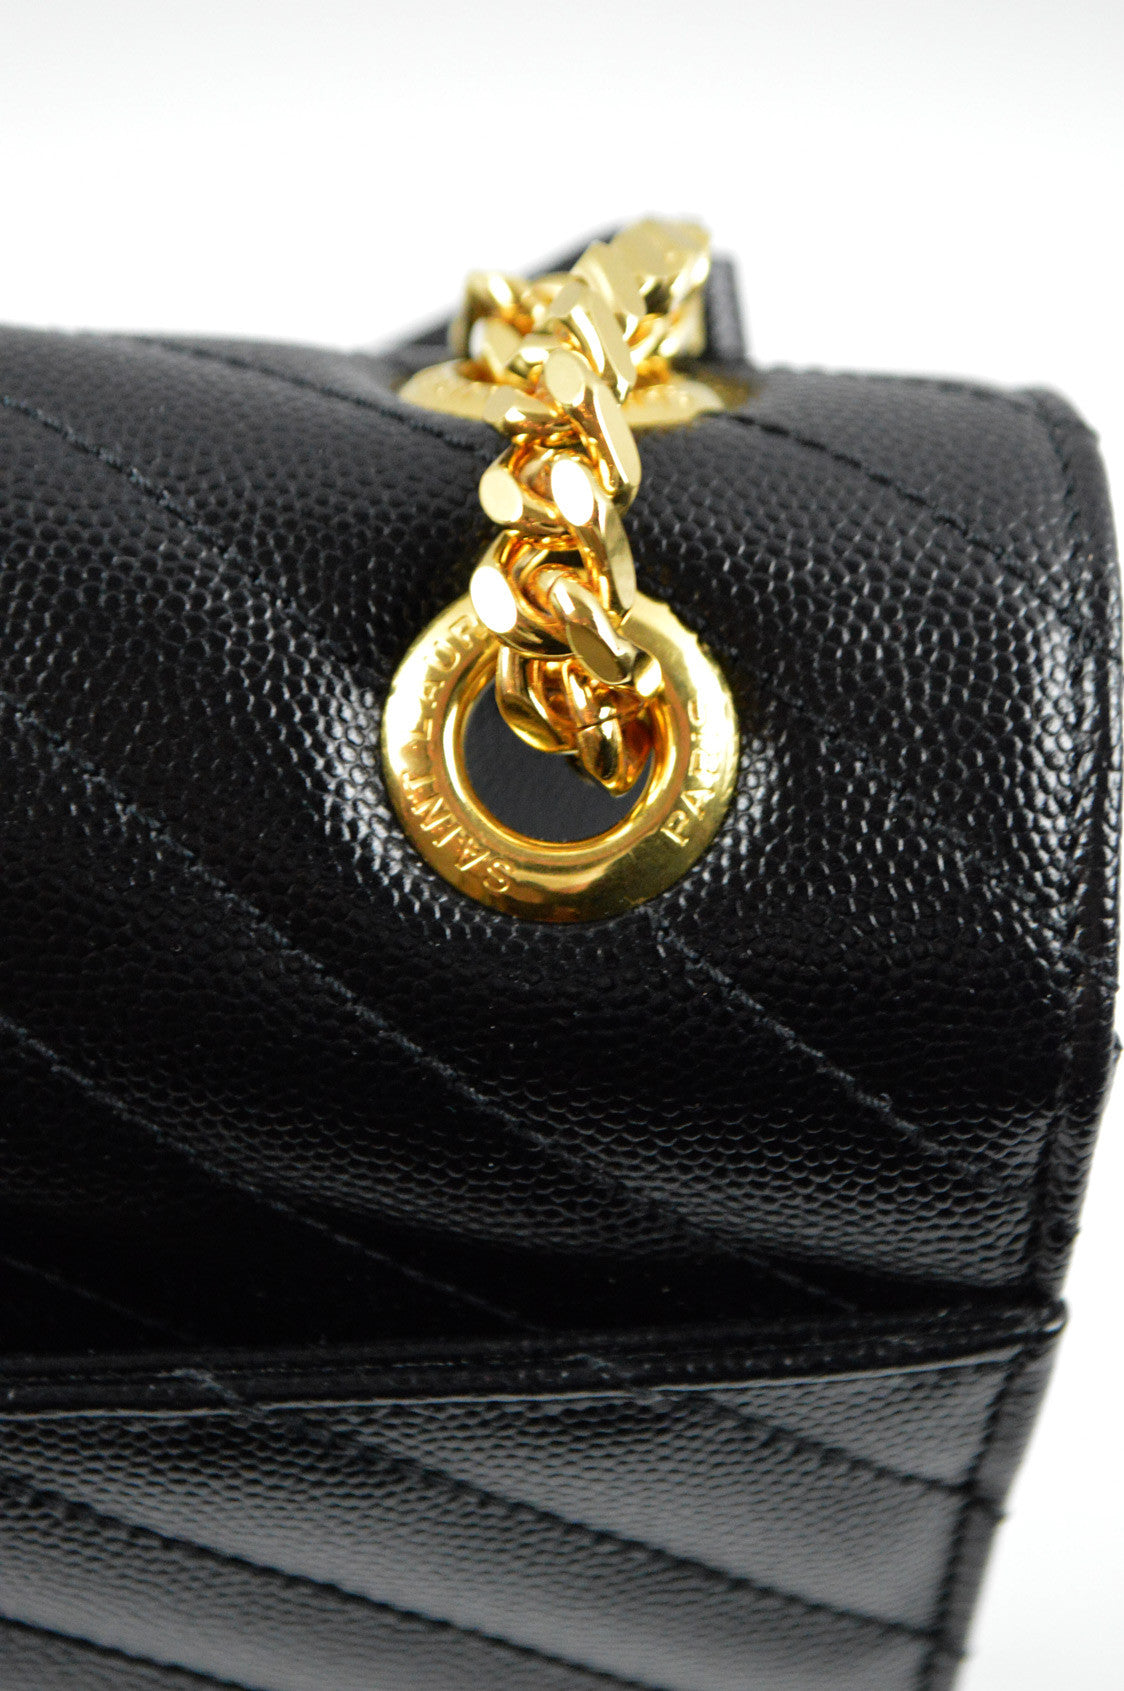 Black Monogram Matelasse Leather Shoulder Bag - On Layaway